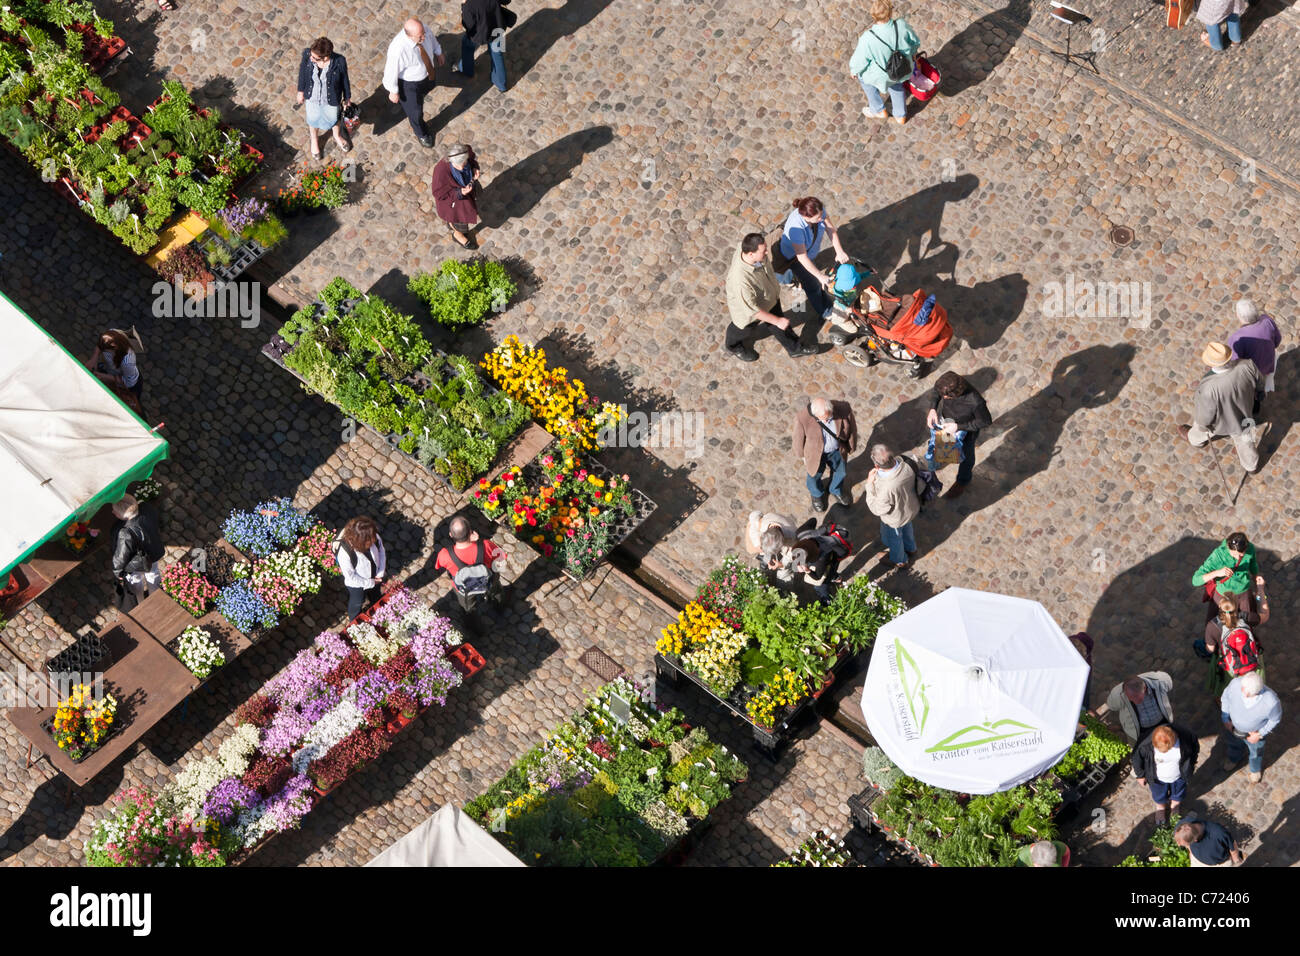 FAMER'S MARKET, MARKET PLACE IN FRONT OF THE CATHEDRAL, FREIBURG IM BREISGAU, BADEN-WURTTEMBERG, GERMANY - Stock Image